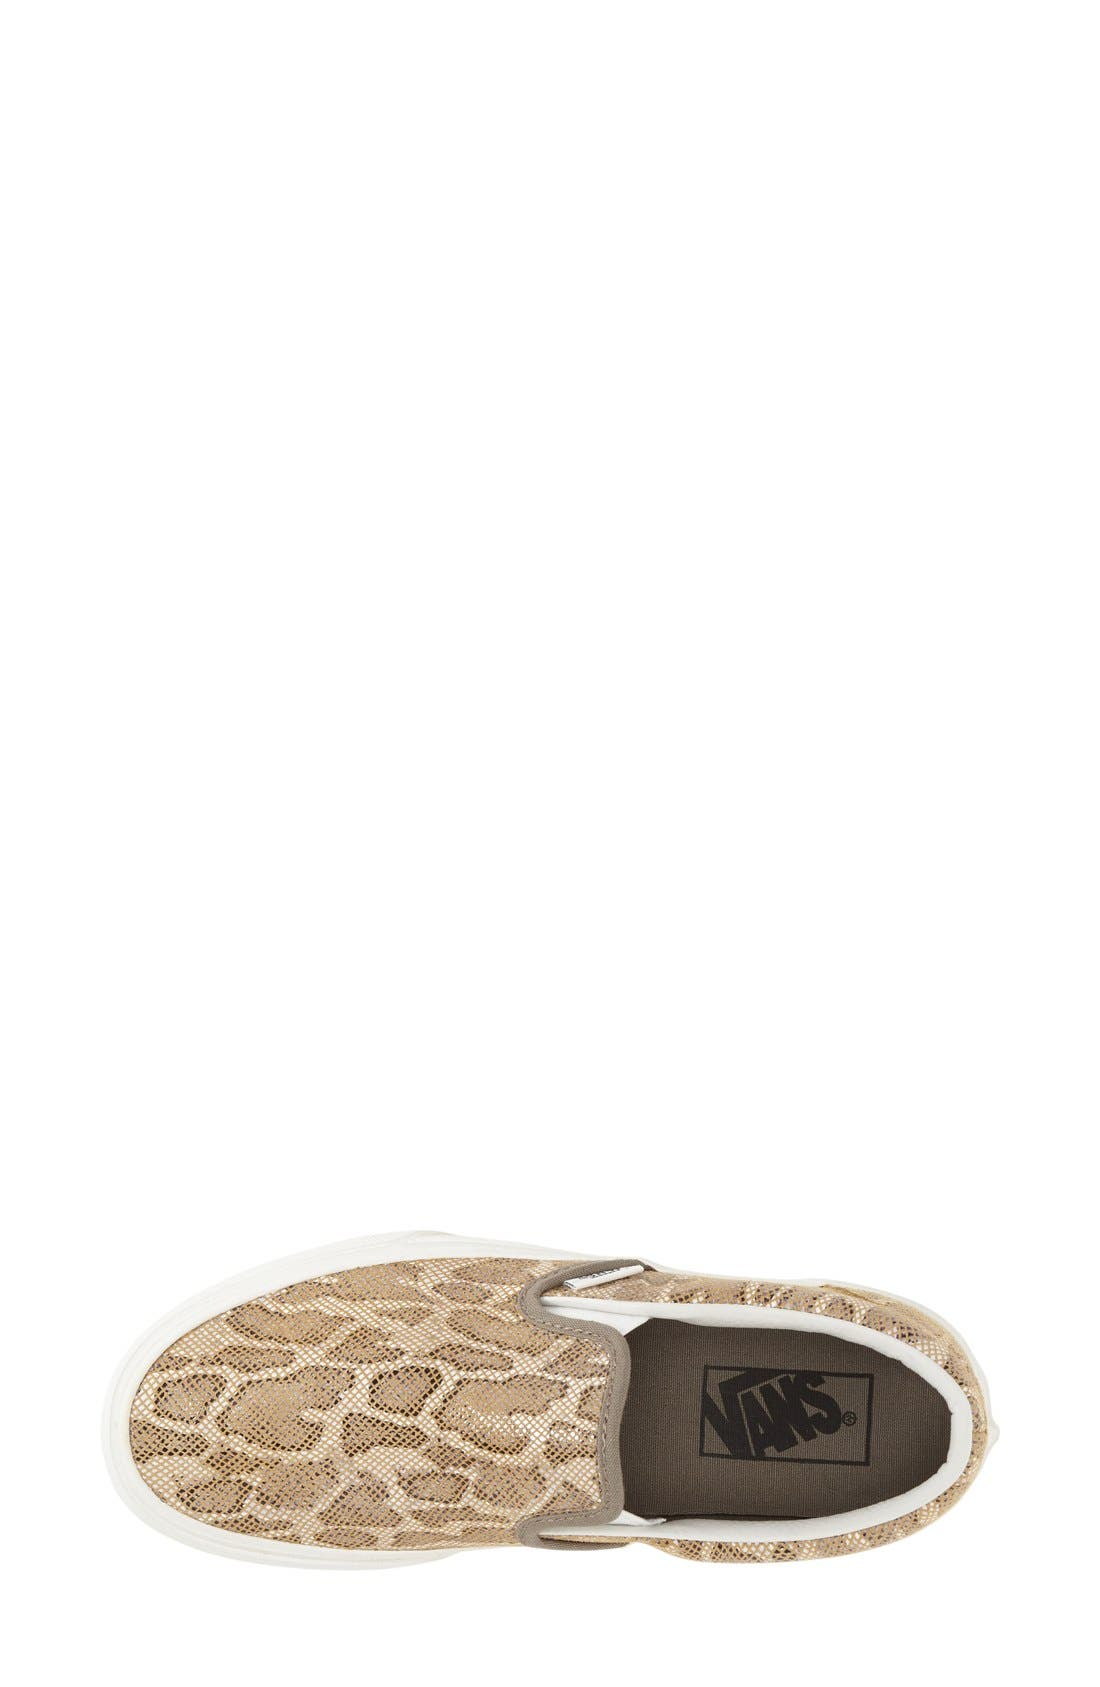 Alternate Image 3  - Vans 'Classic' Leopard Print Slip-On (Women)